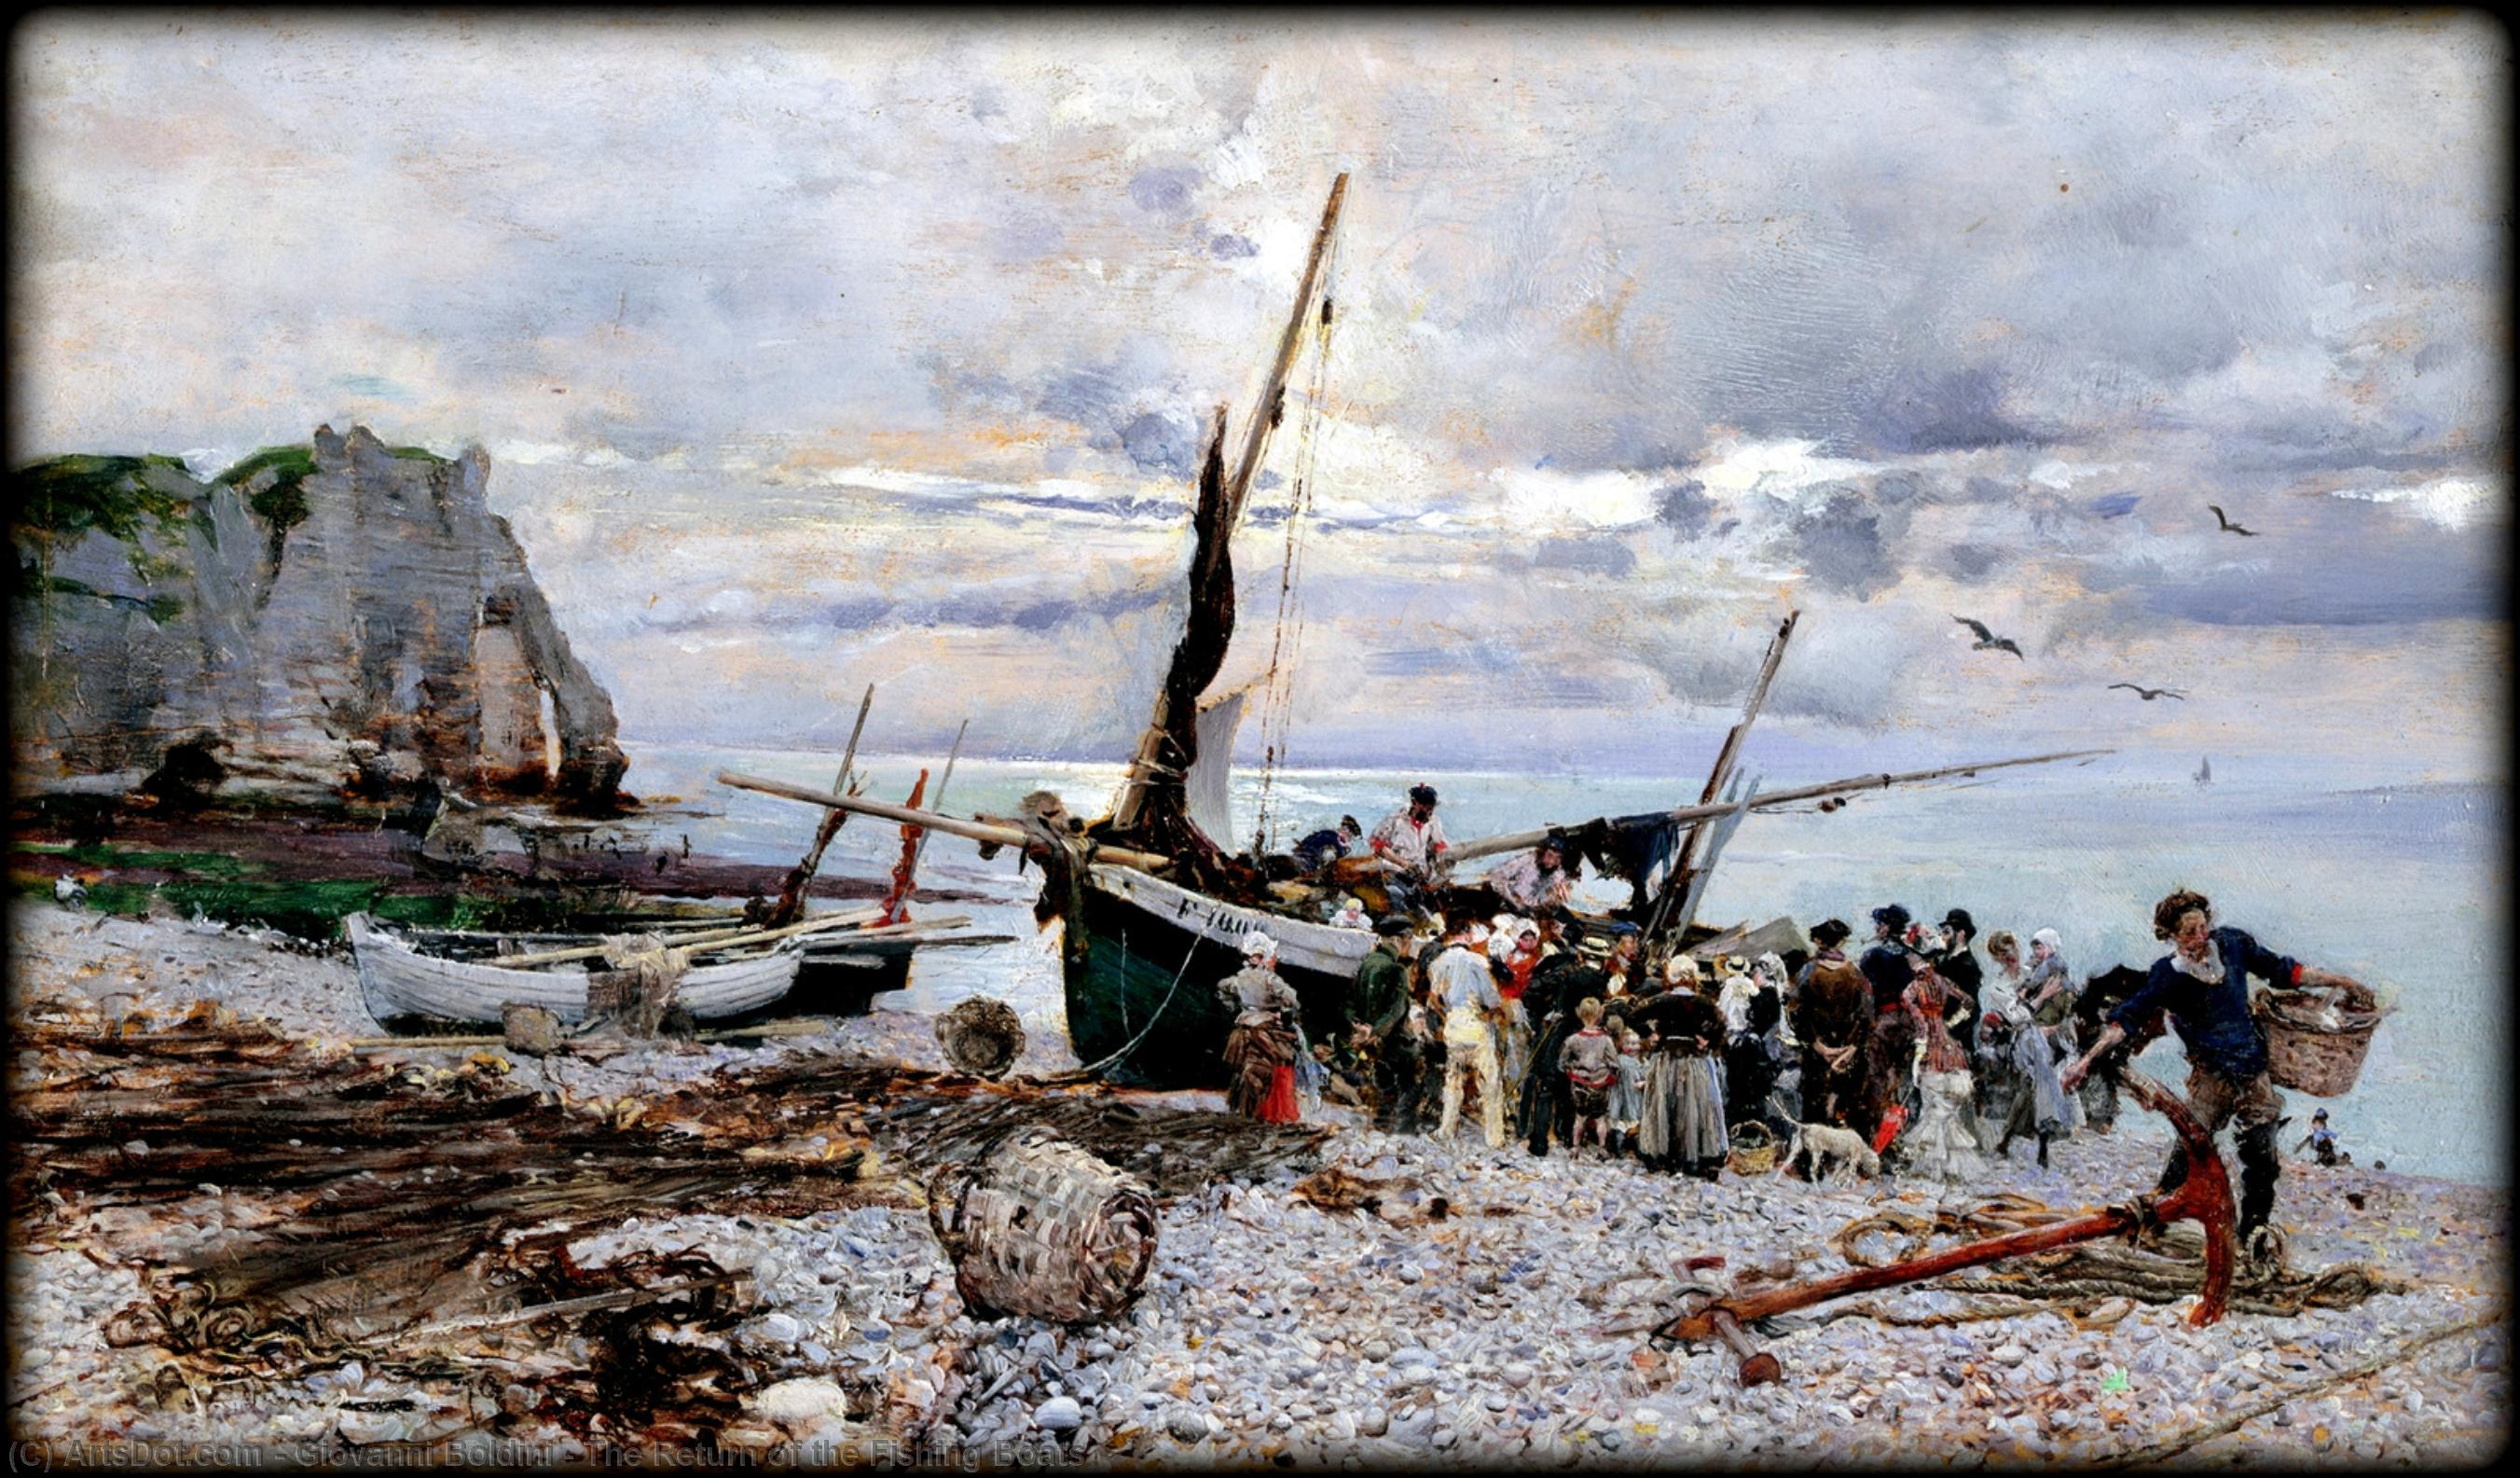 Wikioo.org - The Encyclopedia of Fine Arts - Painting, Artwork by Giovanni Boldini - The Return of the Fishing Boats